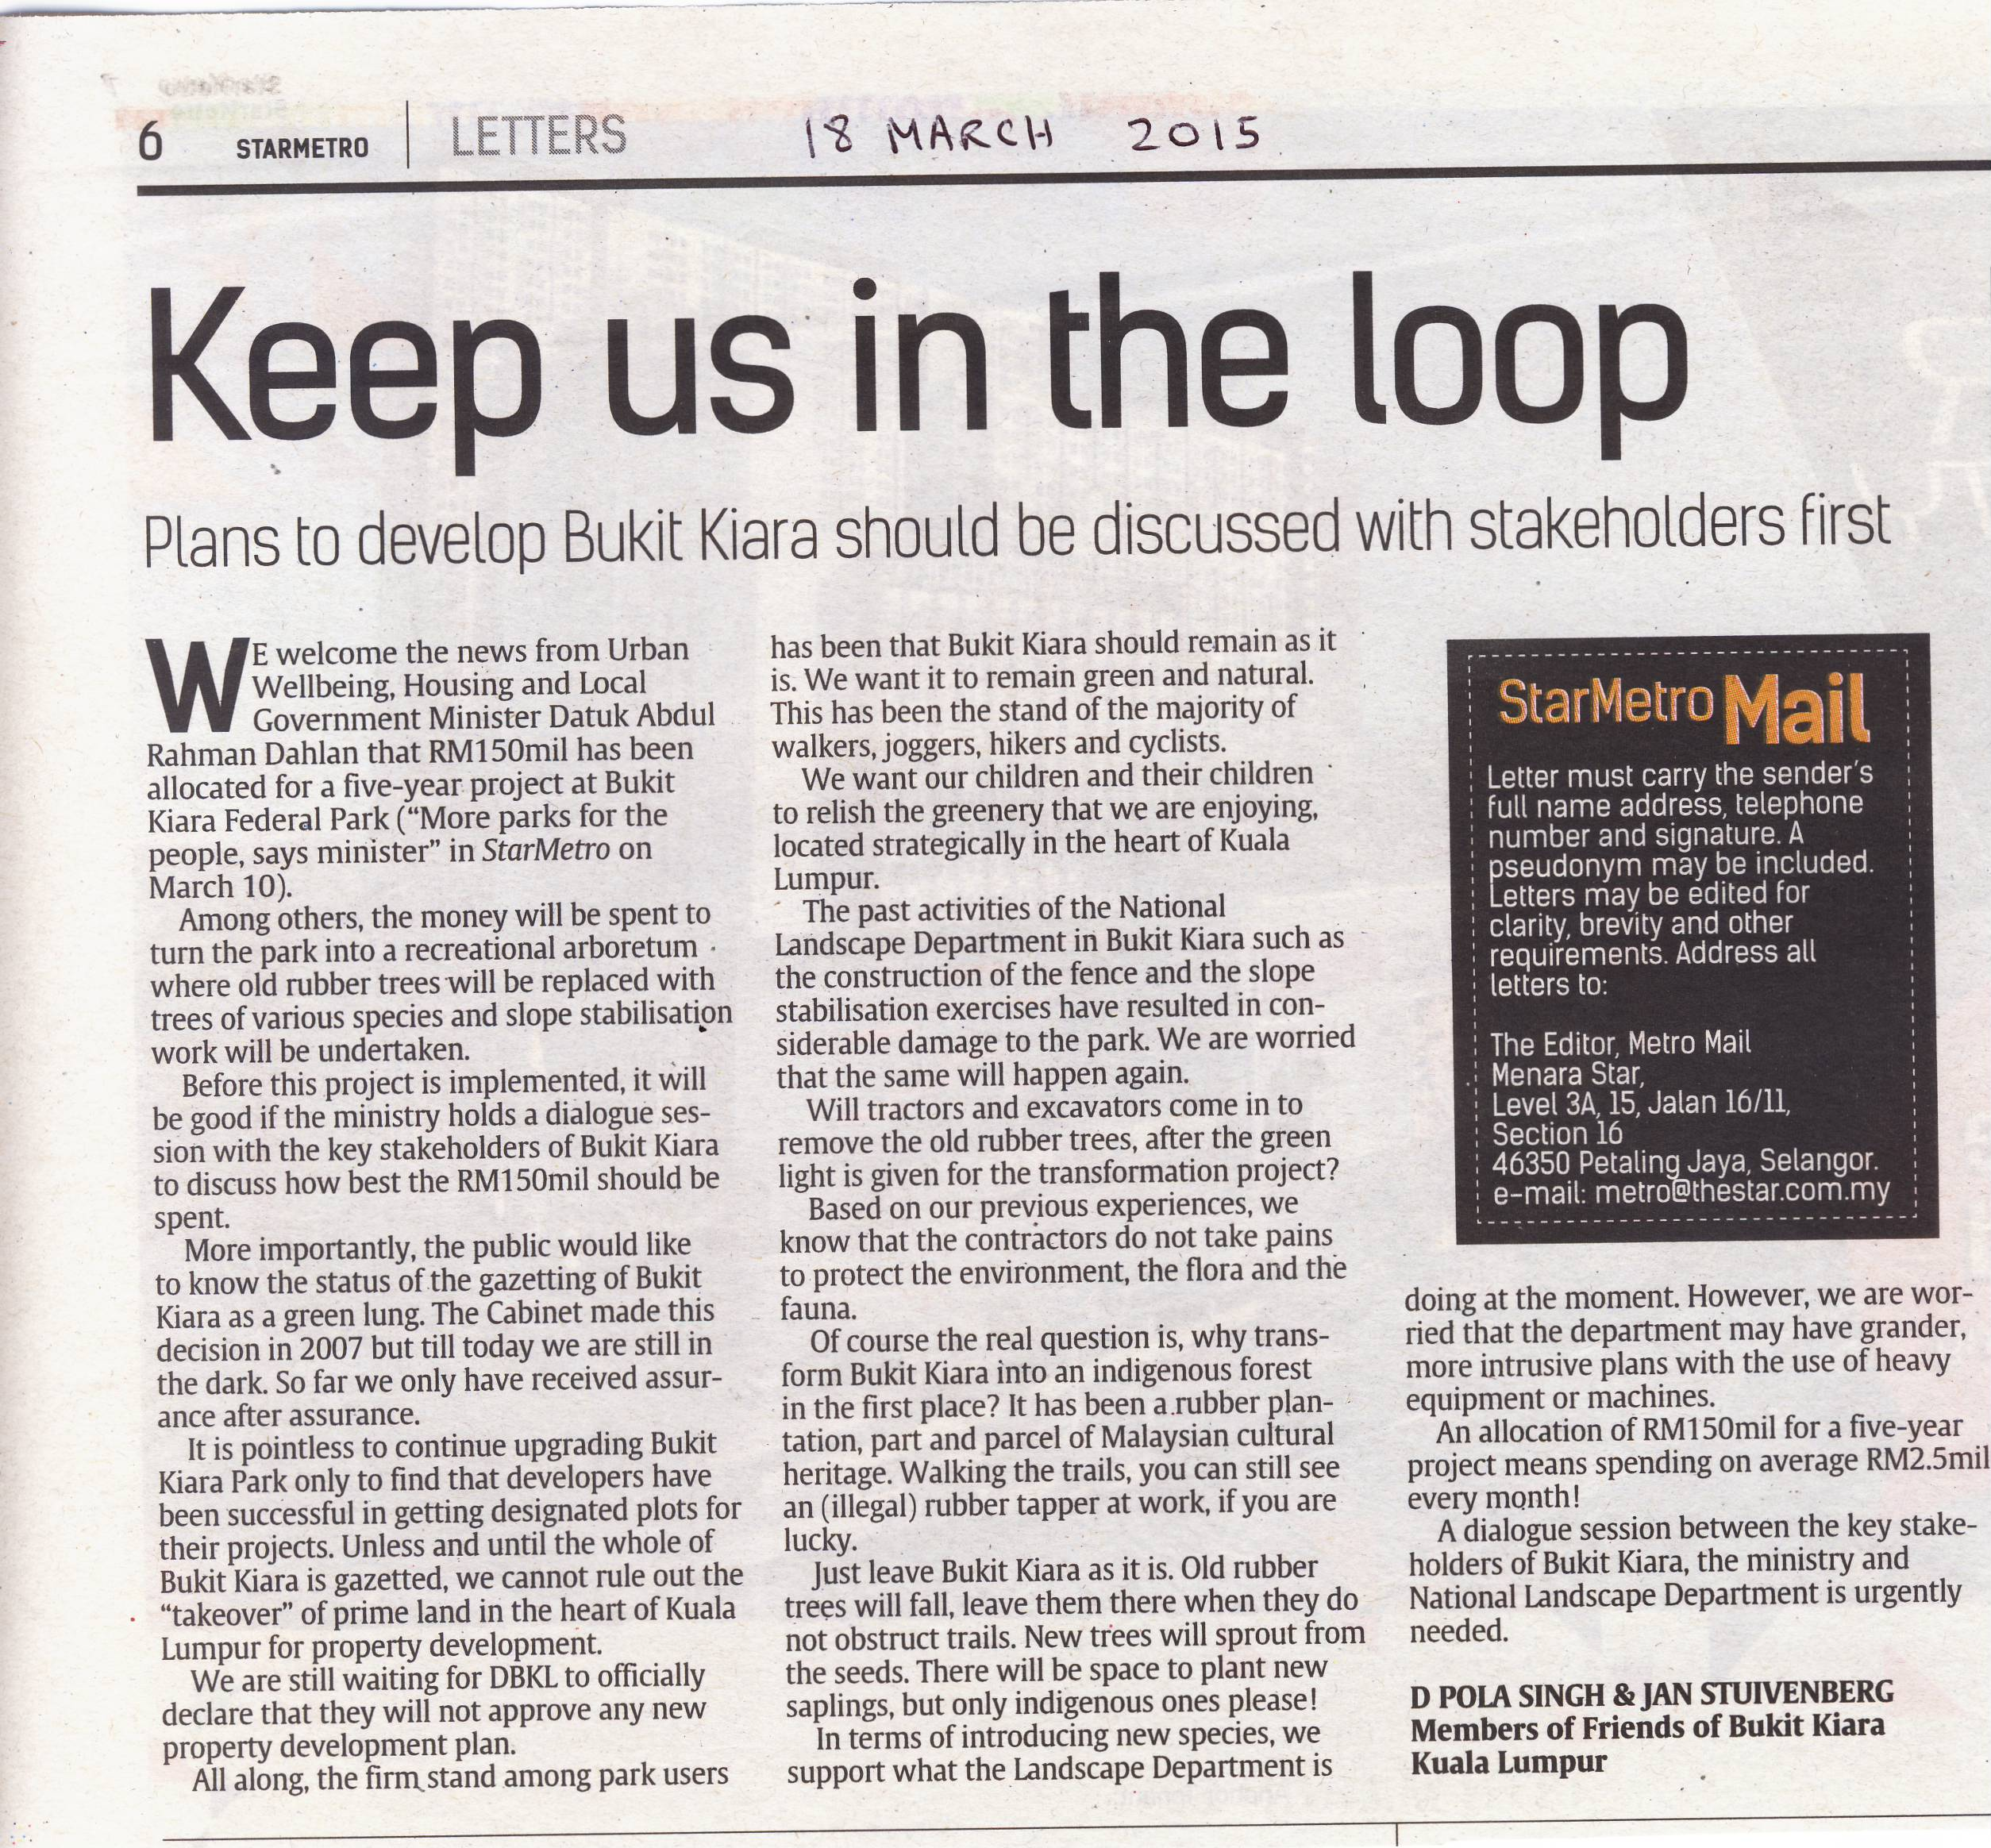 Upgrade of Bukit Kiara - Keep us in the Loop, Metro Star 18 March 2015